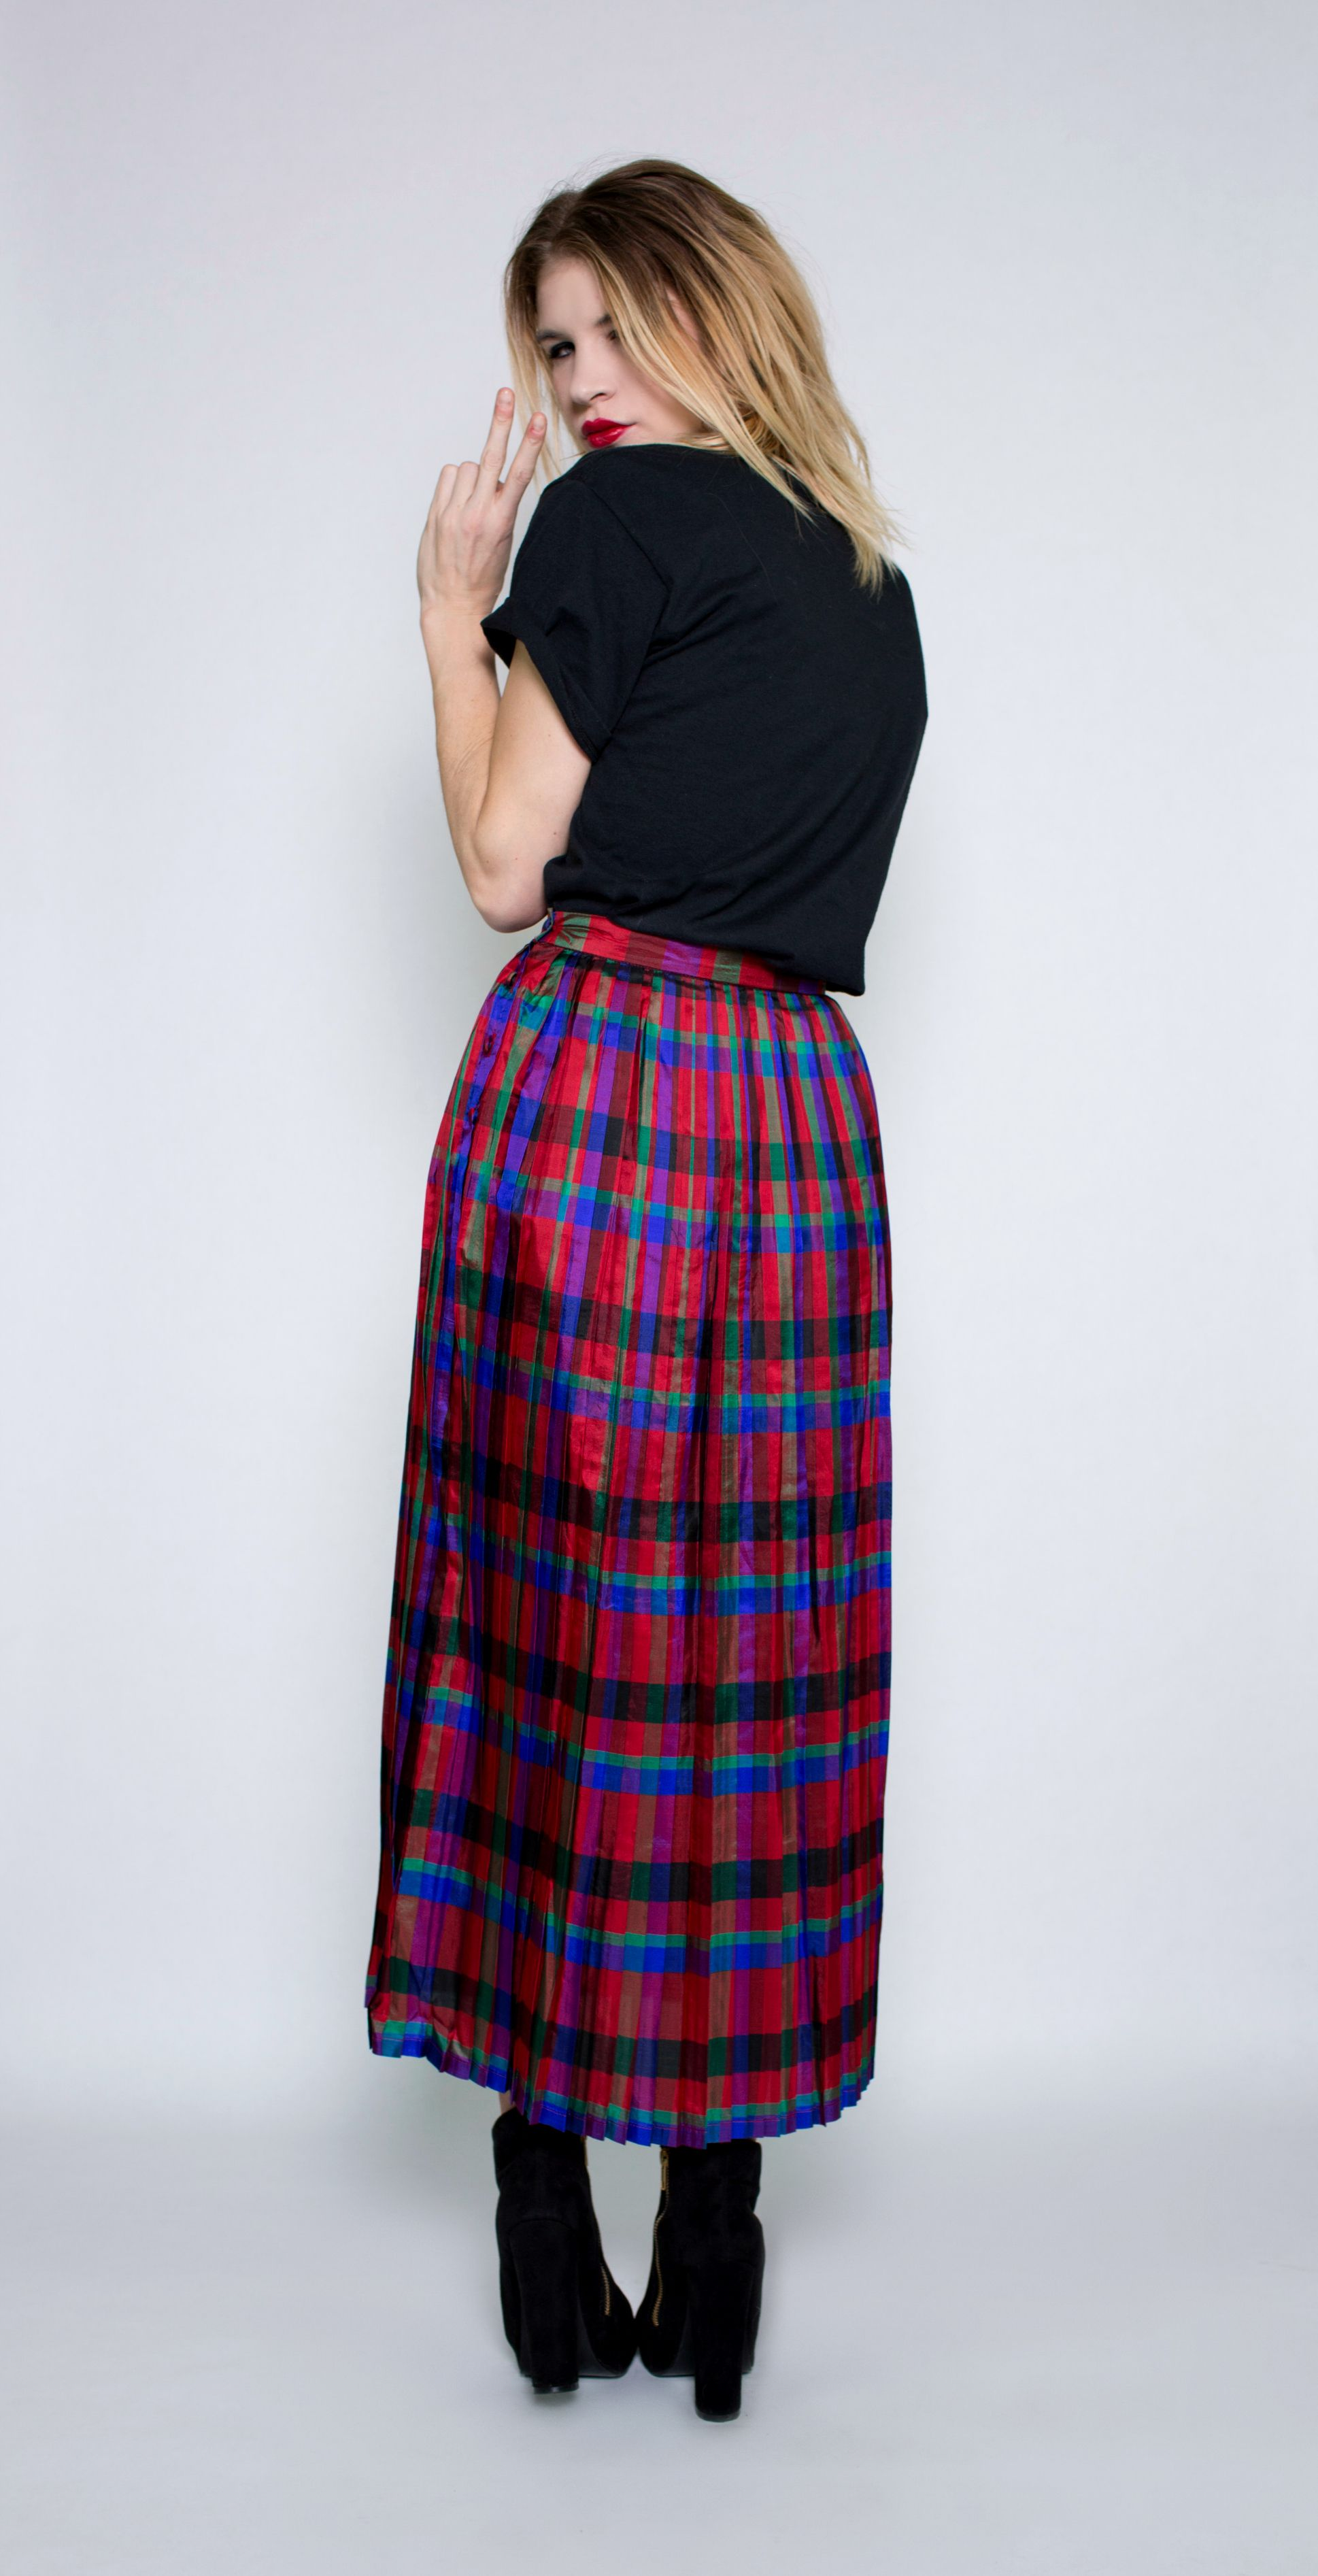 This jewel toned, high-waisted vintage plaid midi skirt is alluring and delivers the ultimate power trip. Pleated layers of lightweight fabric fall to the ankle and illuminate their colors as you move. Rock it with an old ripped tee to complete an effortlessly cool look that's sure to please.  #hipster #pleated #highwaisted #vintageskirt #holidayoutfit #holidayparty #streetstyle #model #runway #messyhair #plaidskirt #peacesign #grungefashion #hipsterfashion